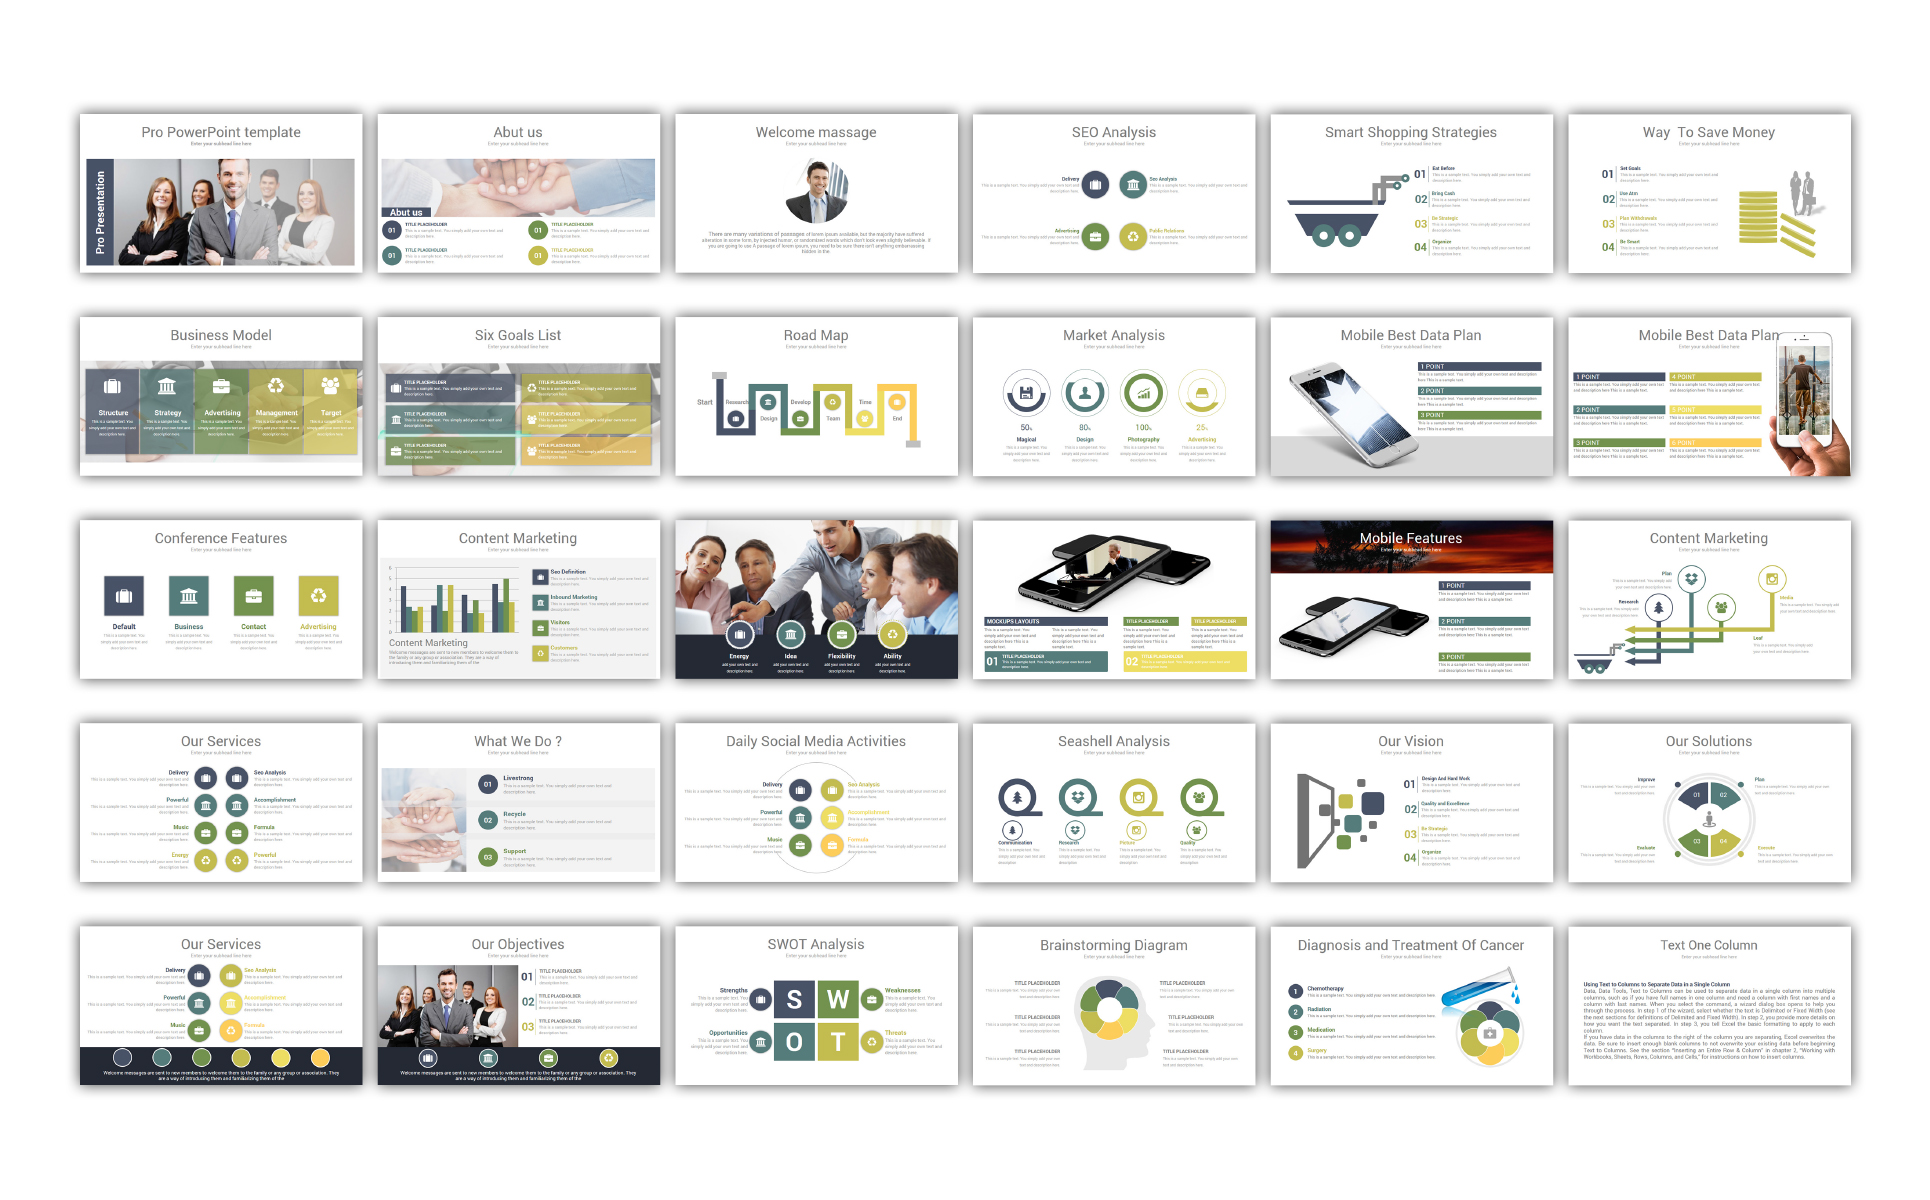 Pro - PowerPoint Template